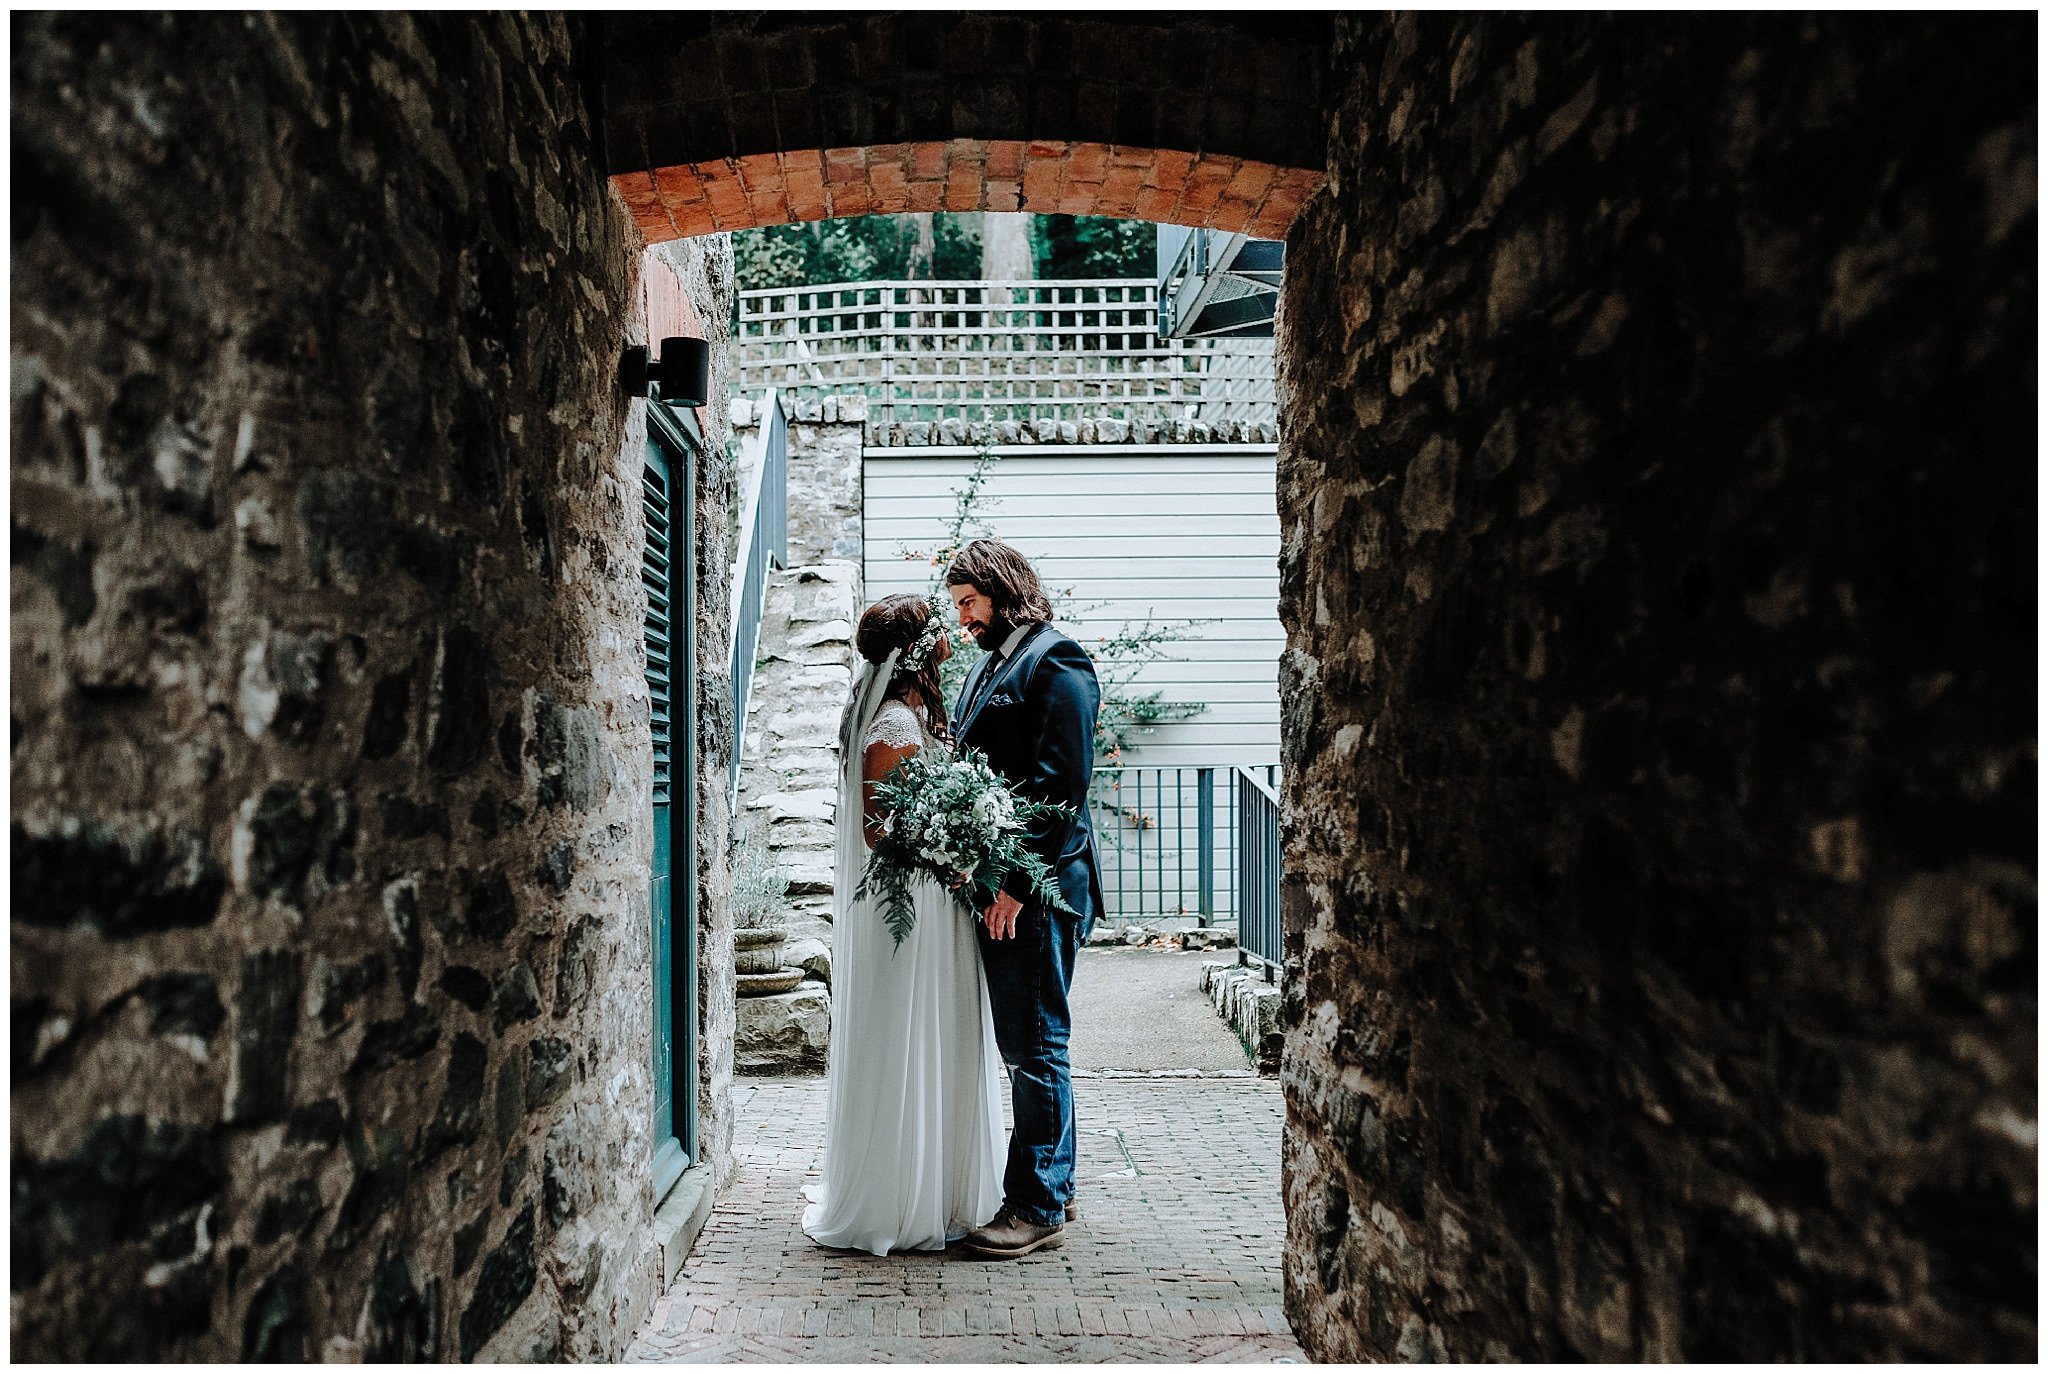 Bride and Groom in tunnel at Bodnant Welsh Food Centre